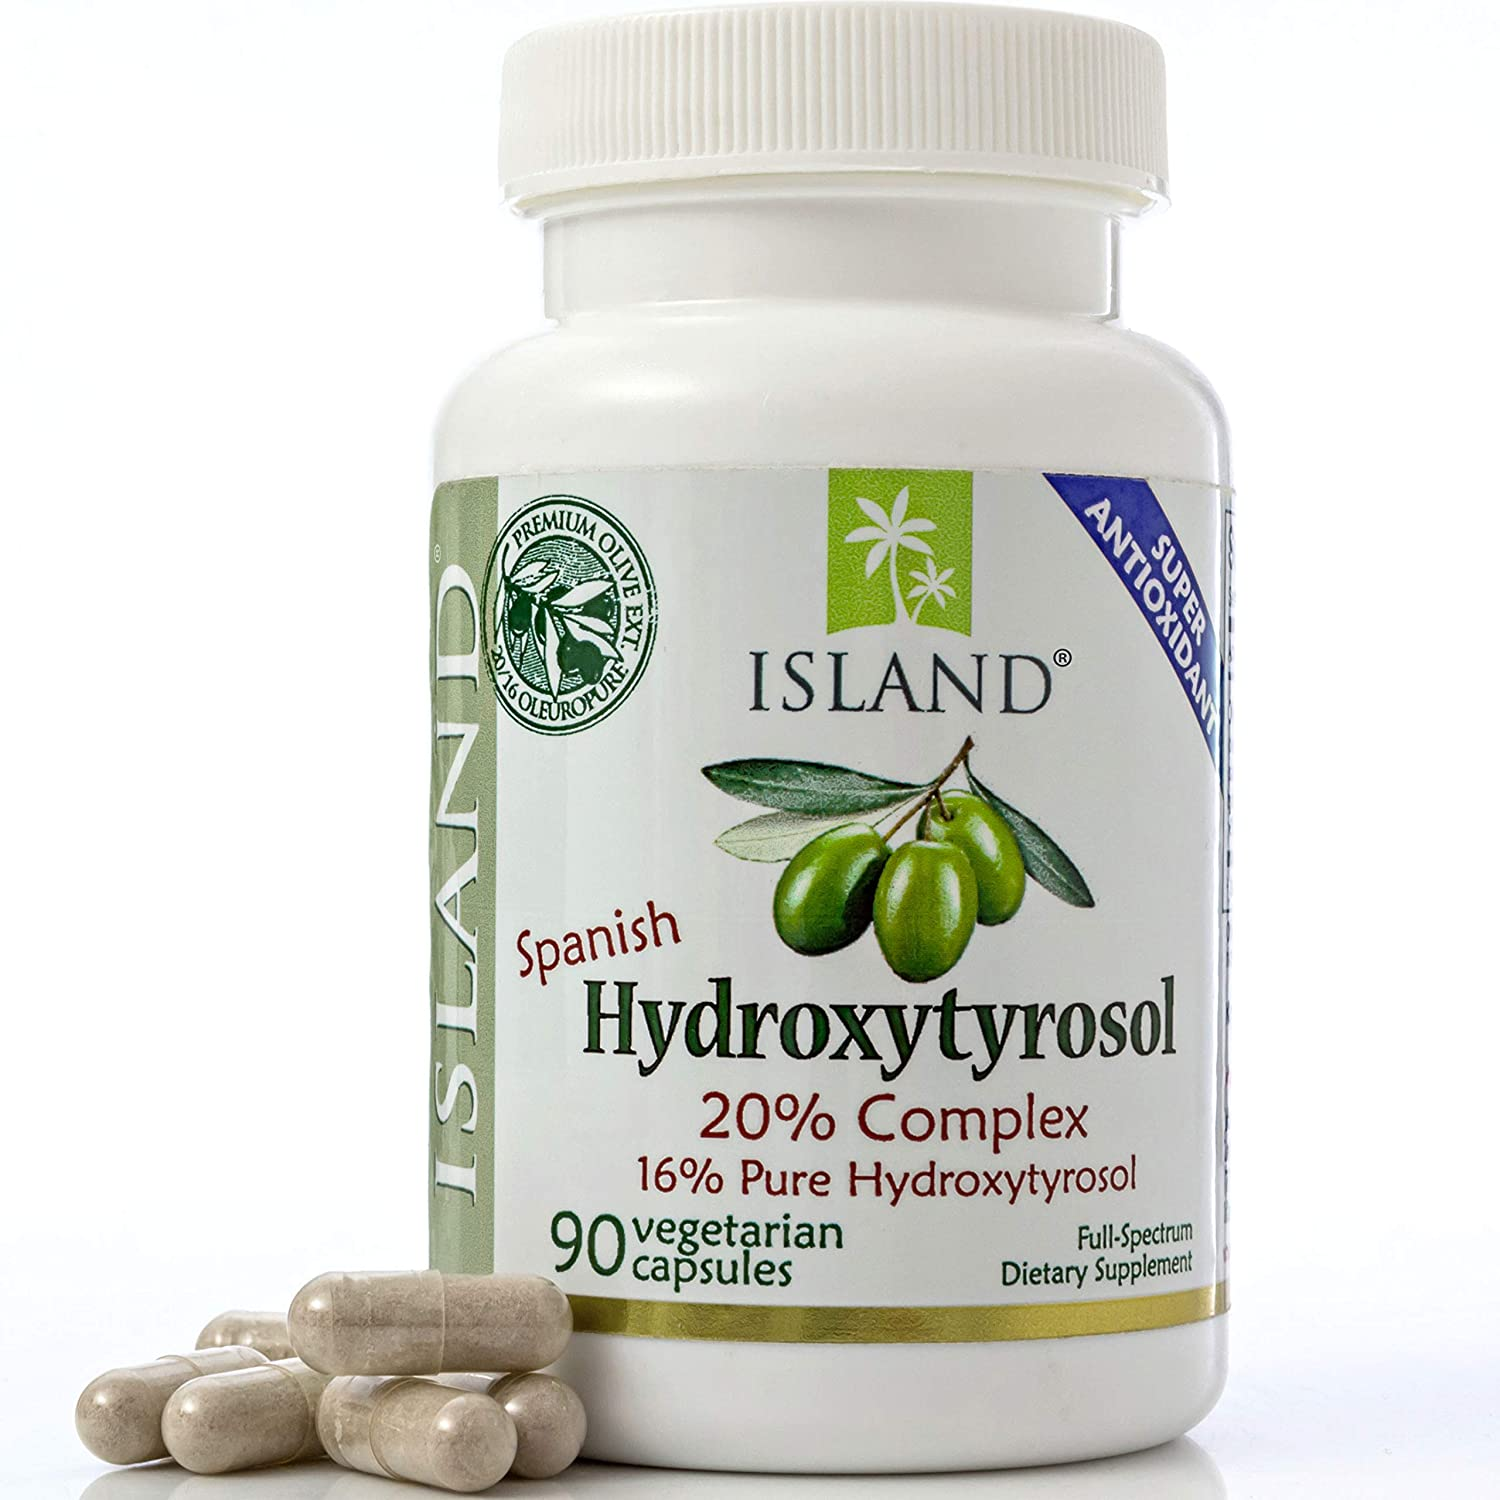 20 Hydroxytyrosol Complex Olive Fruit Extract – Super Strength 100 Grown Extracted in Spain. 100 mg, 90 Capsules. from Island Nutrition, The Maker of Real European Olive Leaf Extract.